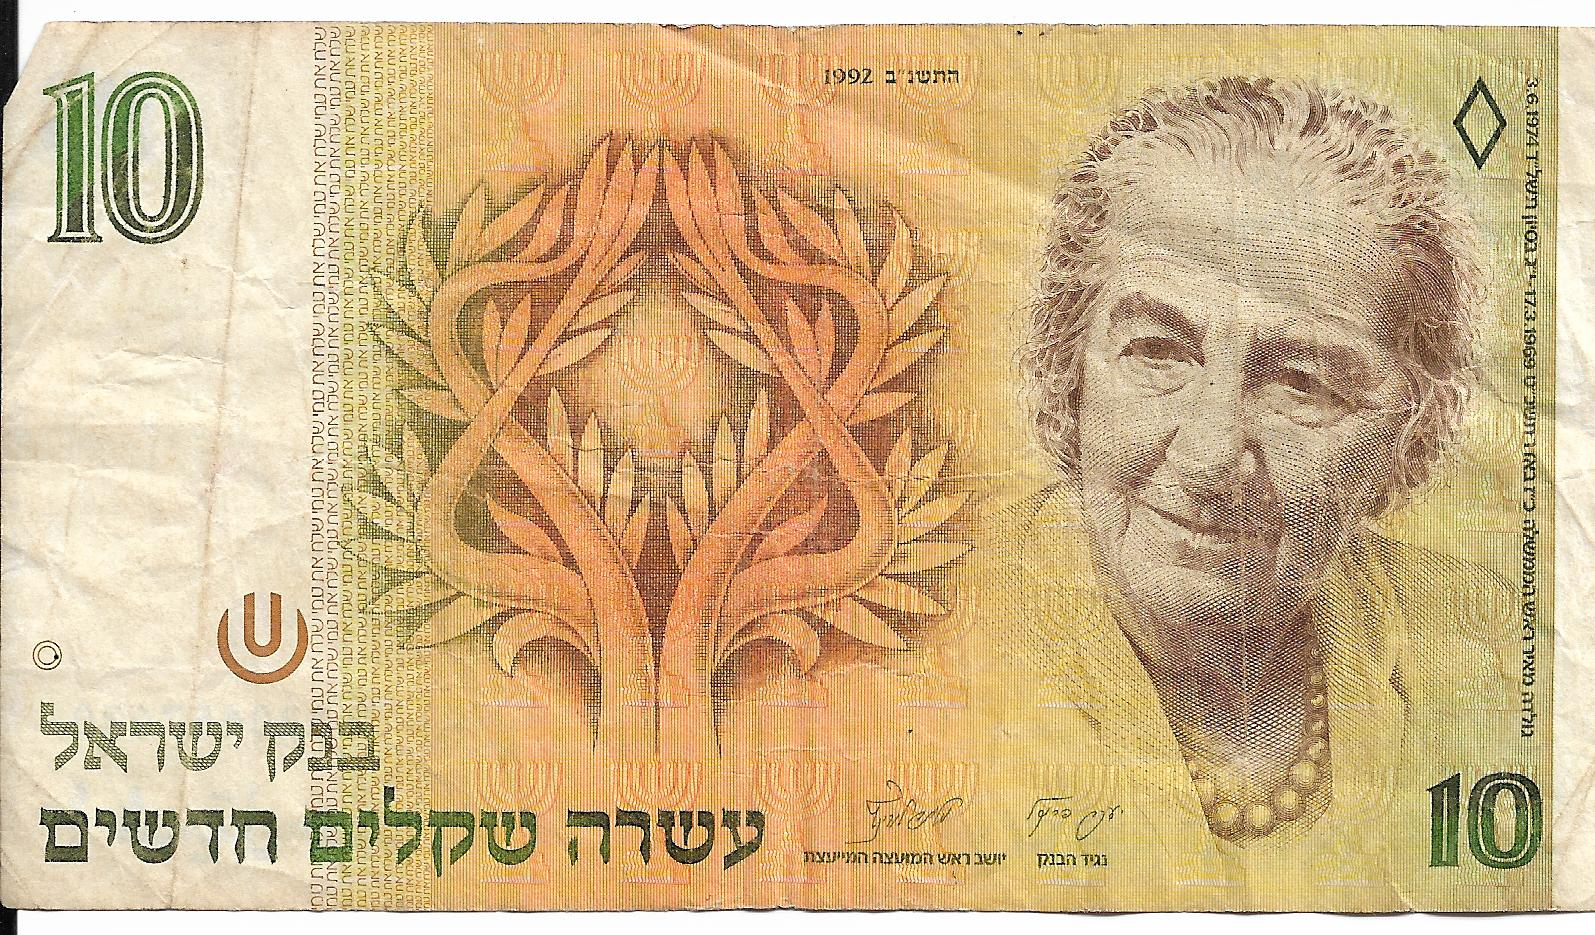 This Would Have Been Worth 100 000 Lira But Never Existed Then 10 Nis Btw Since There Were Already At The Shekel Was New